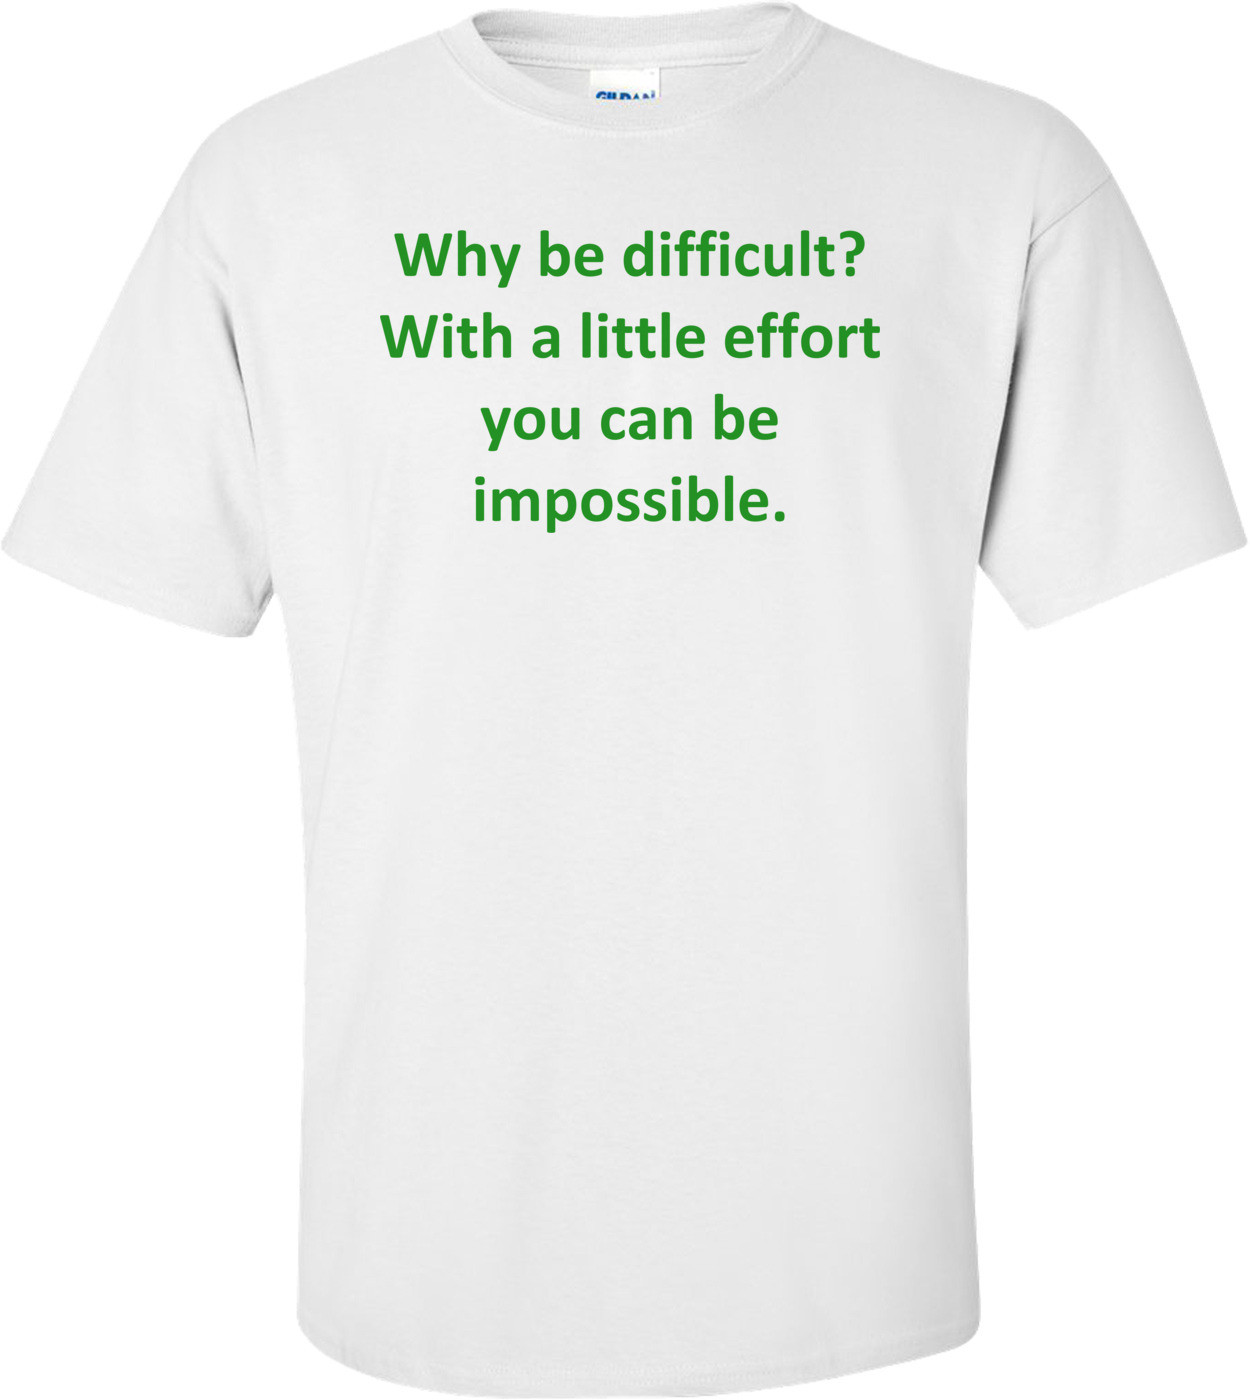 Why be difficult? With a little effort you can be impossible. Shirt